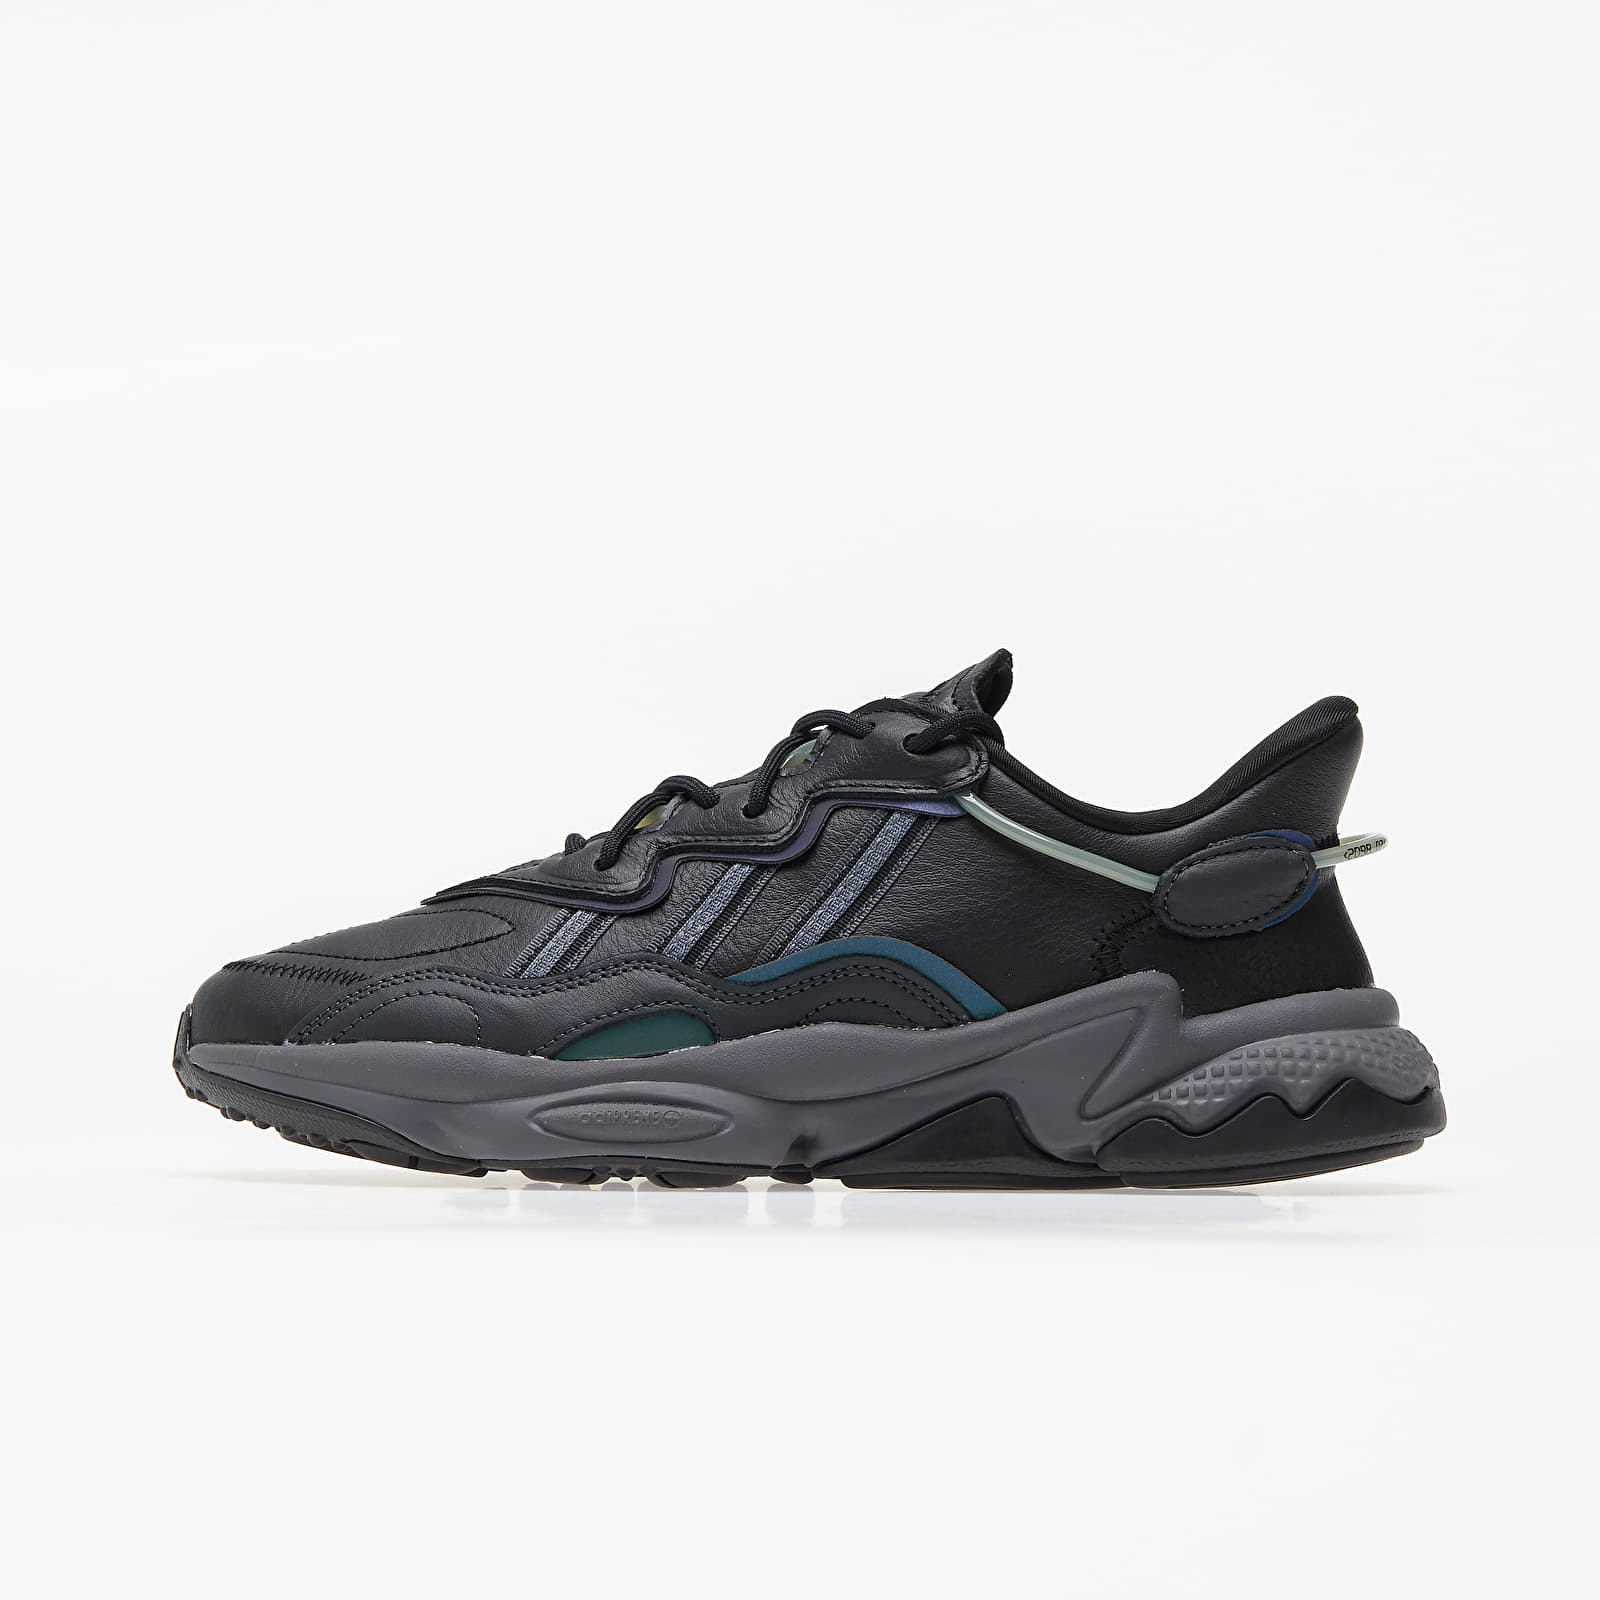 adidas Ozweego Core Black/ Grey Four/ Onix EUR 46